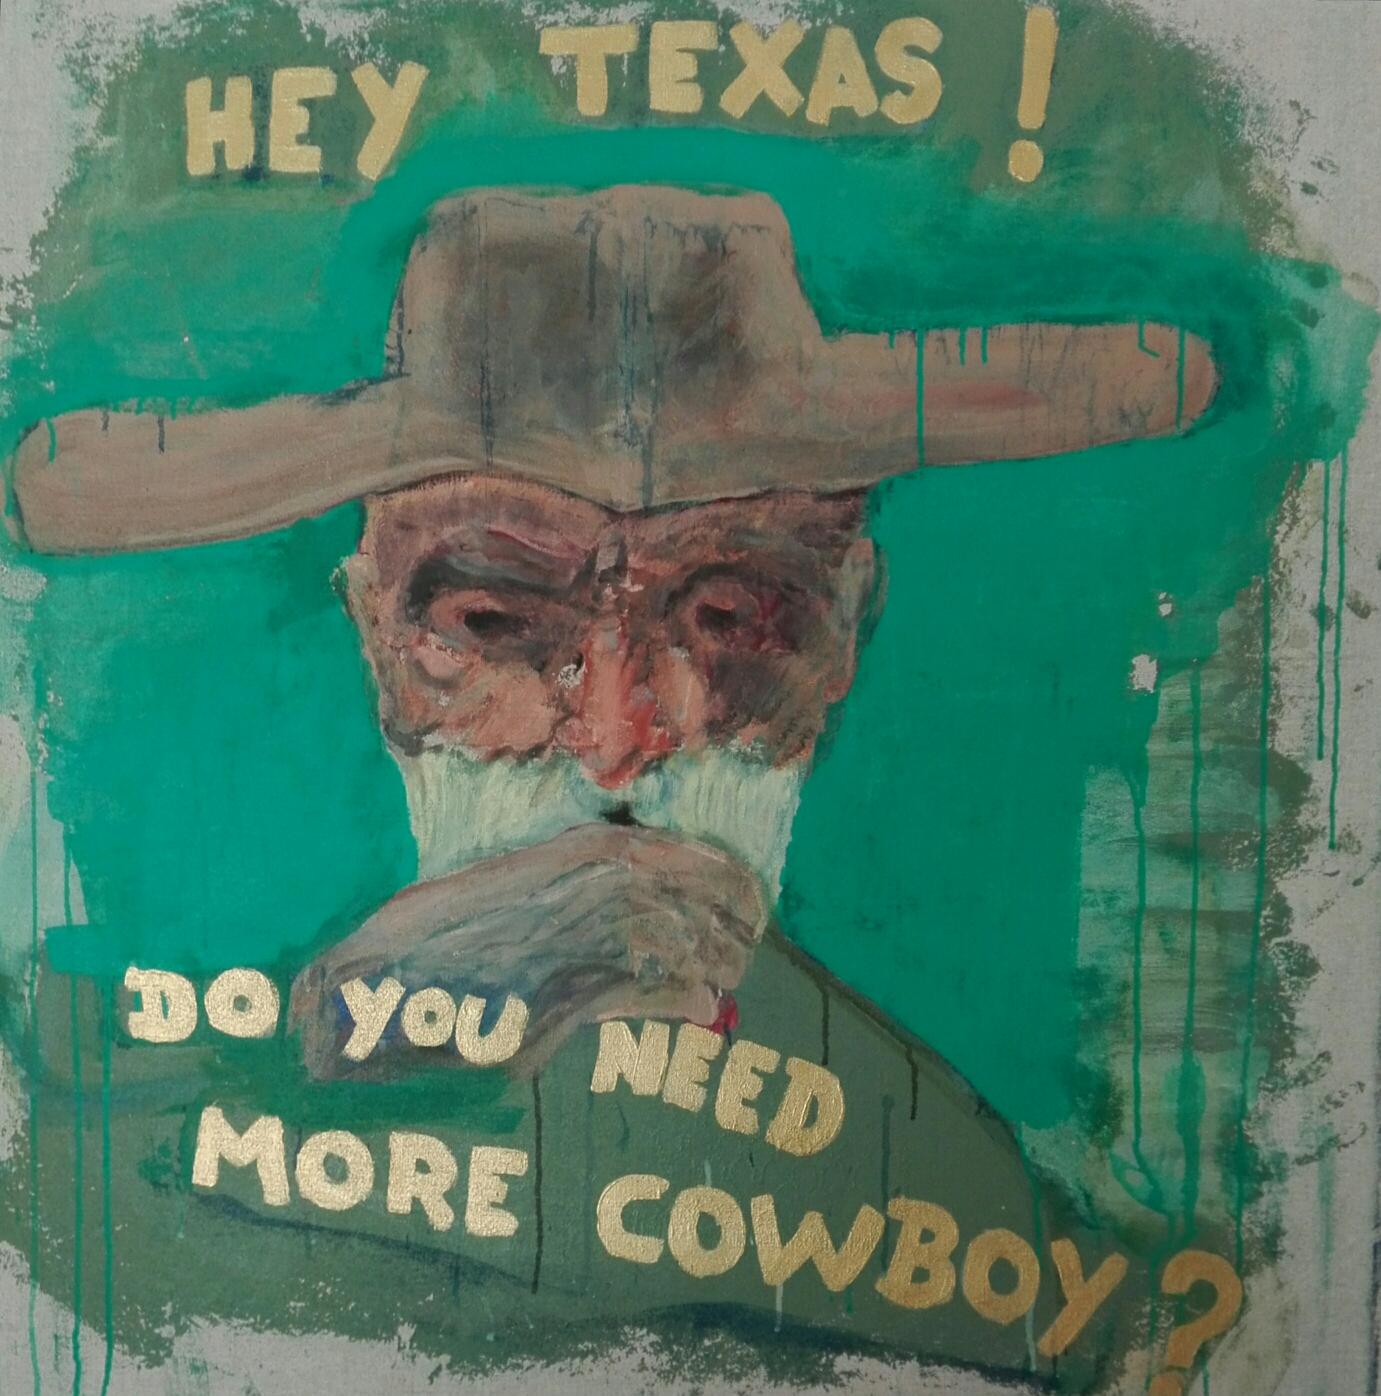 Not available - «More cow-boy ?» 98x98cm Sennelier acrylic on linen.